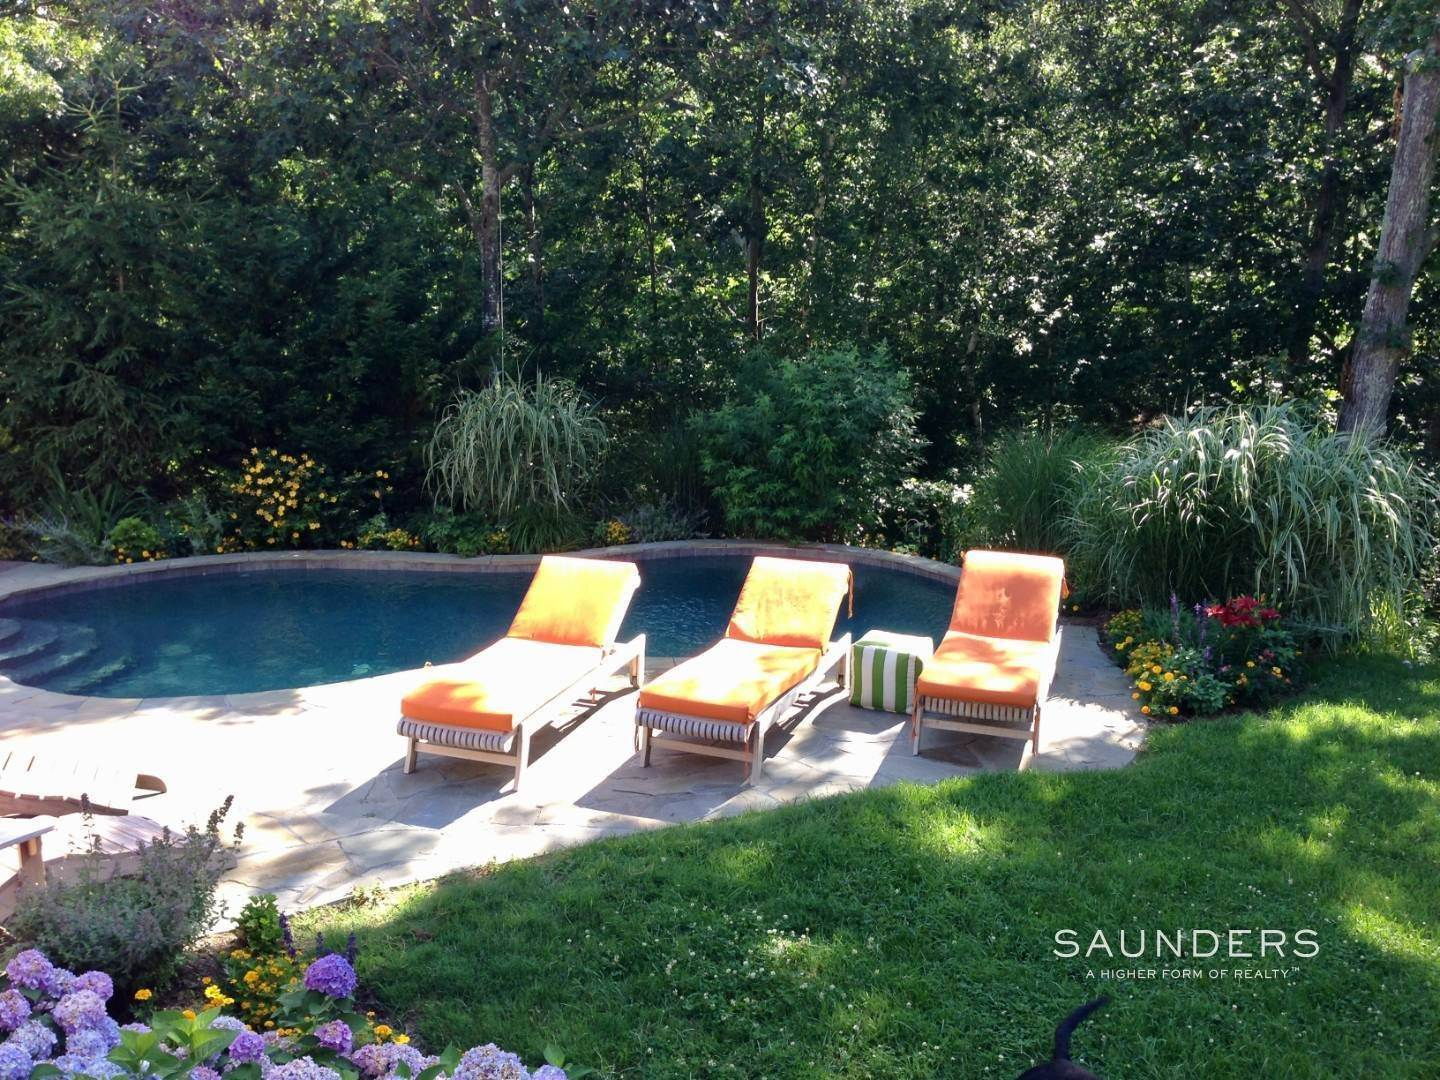 3. Single Family Homes for Sale at Shelter Island Tranquility With Pool 23 Lakeview Drive, Shelter Island, NY 11964